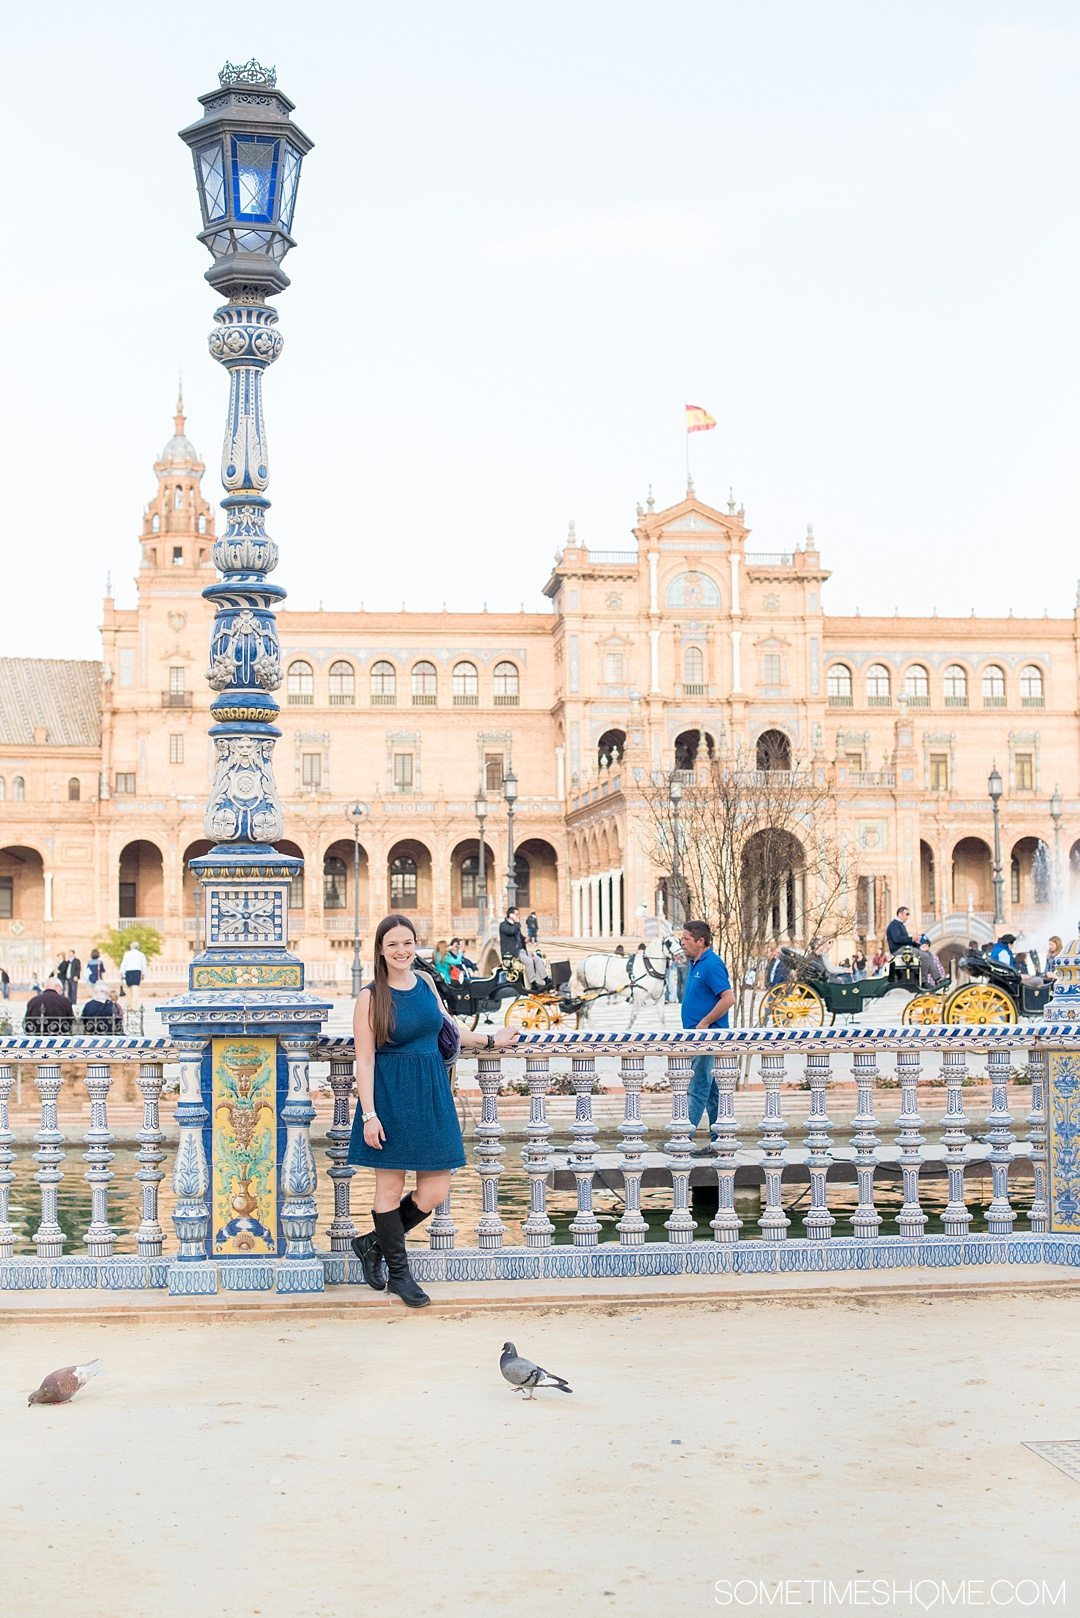 You Haven't Seen Seville Until You've Visited These 3 Sites, by Sometimes Home travel blog. Photo of Plaza de Espana's colorful handpainted ceramic railings.